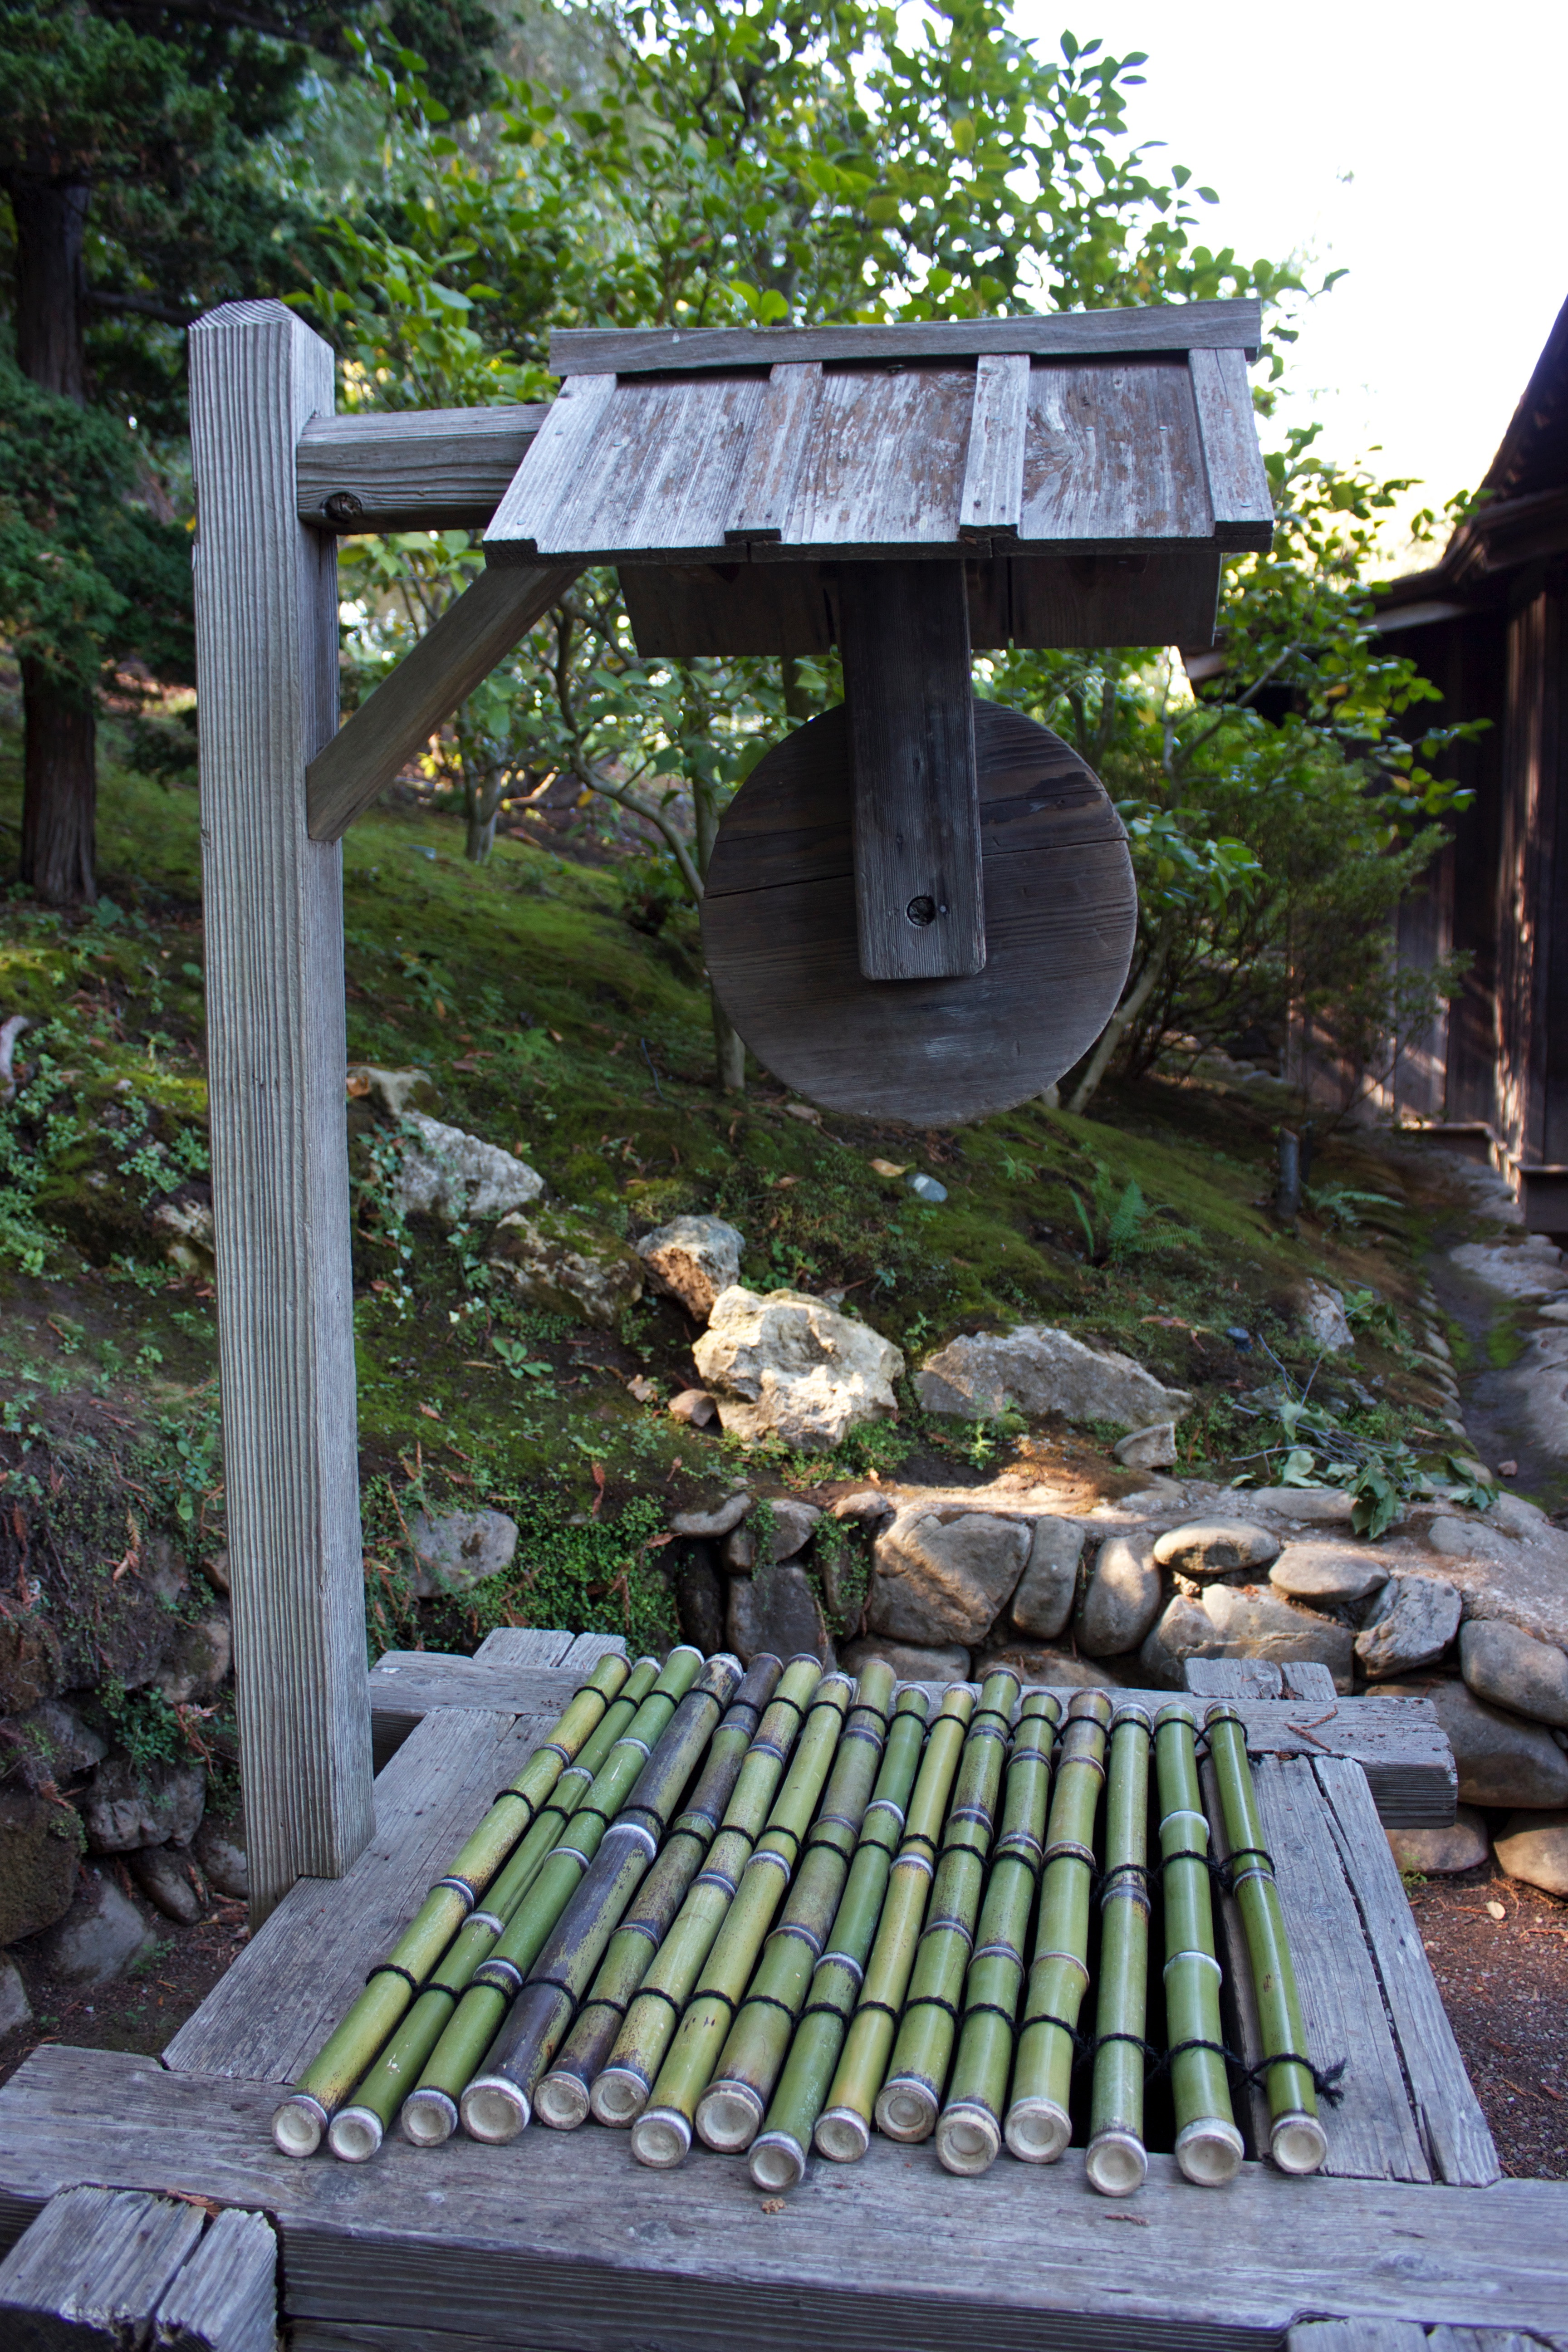 An old wooden water well in a Japanese garden, covered by bamboo stalks strung together.